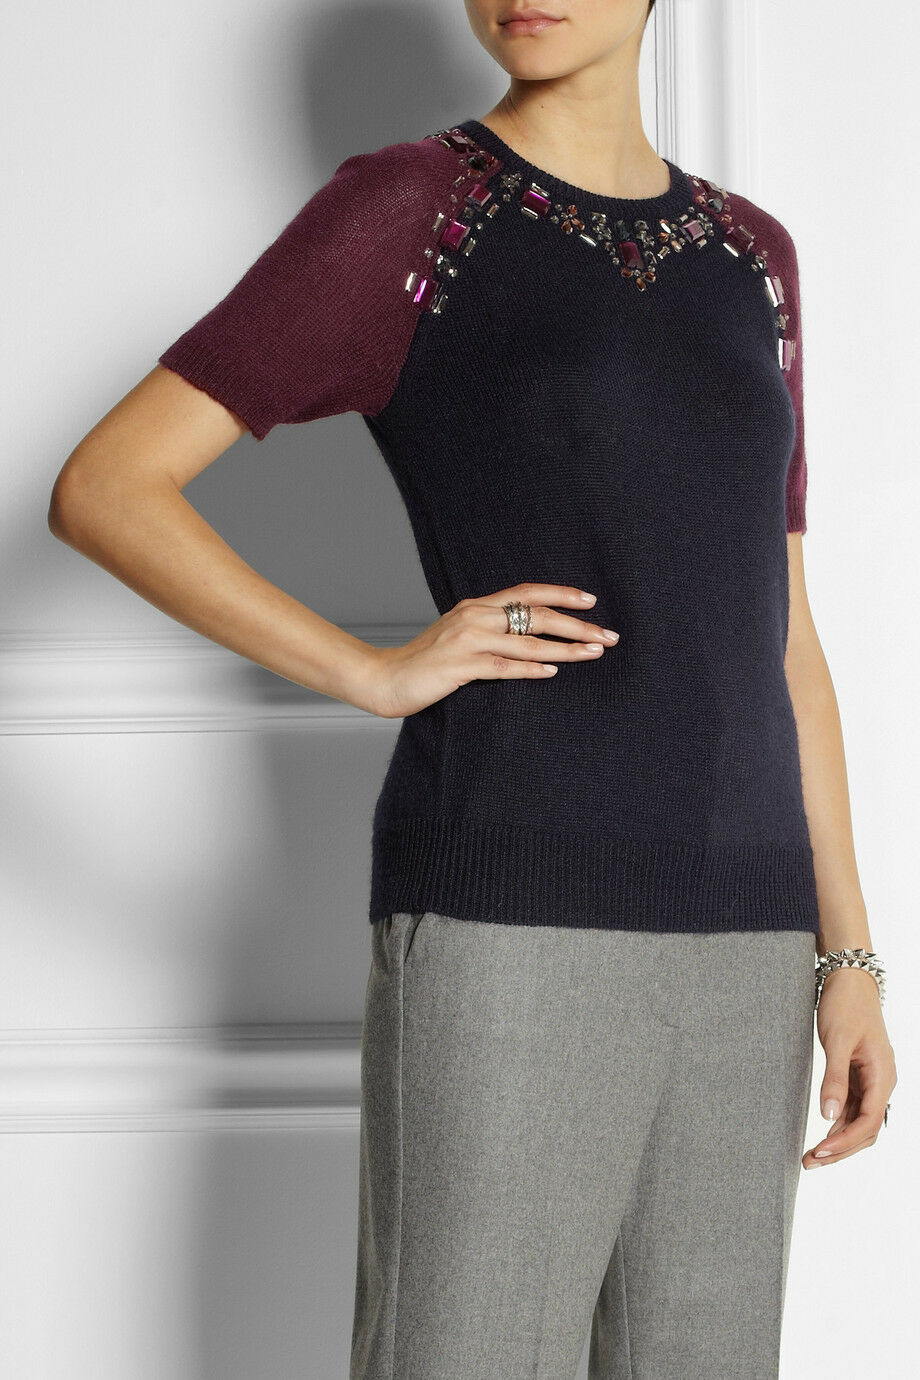 NWT J Crew Crystal-embellished knitted sweater topSRet